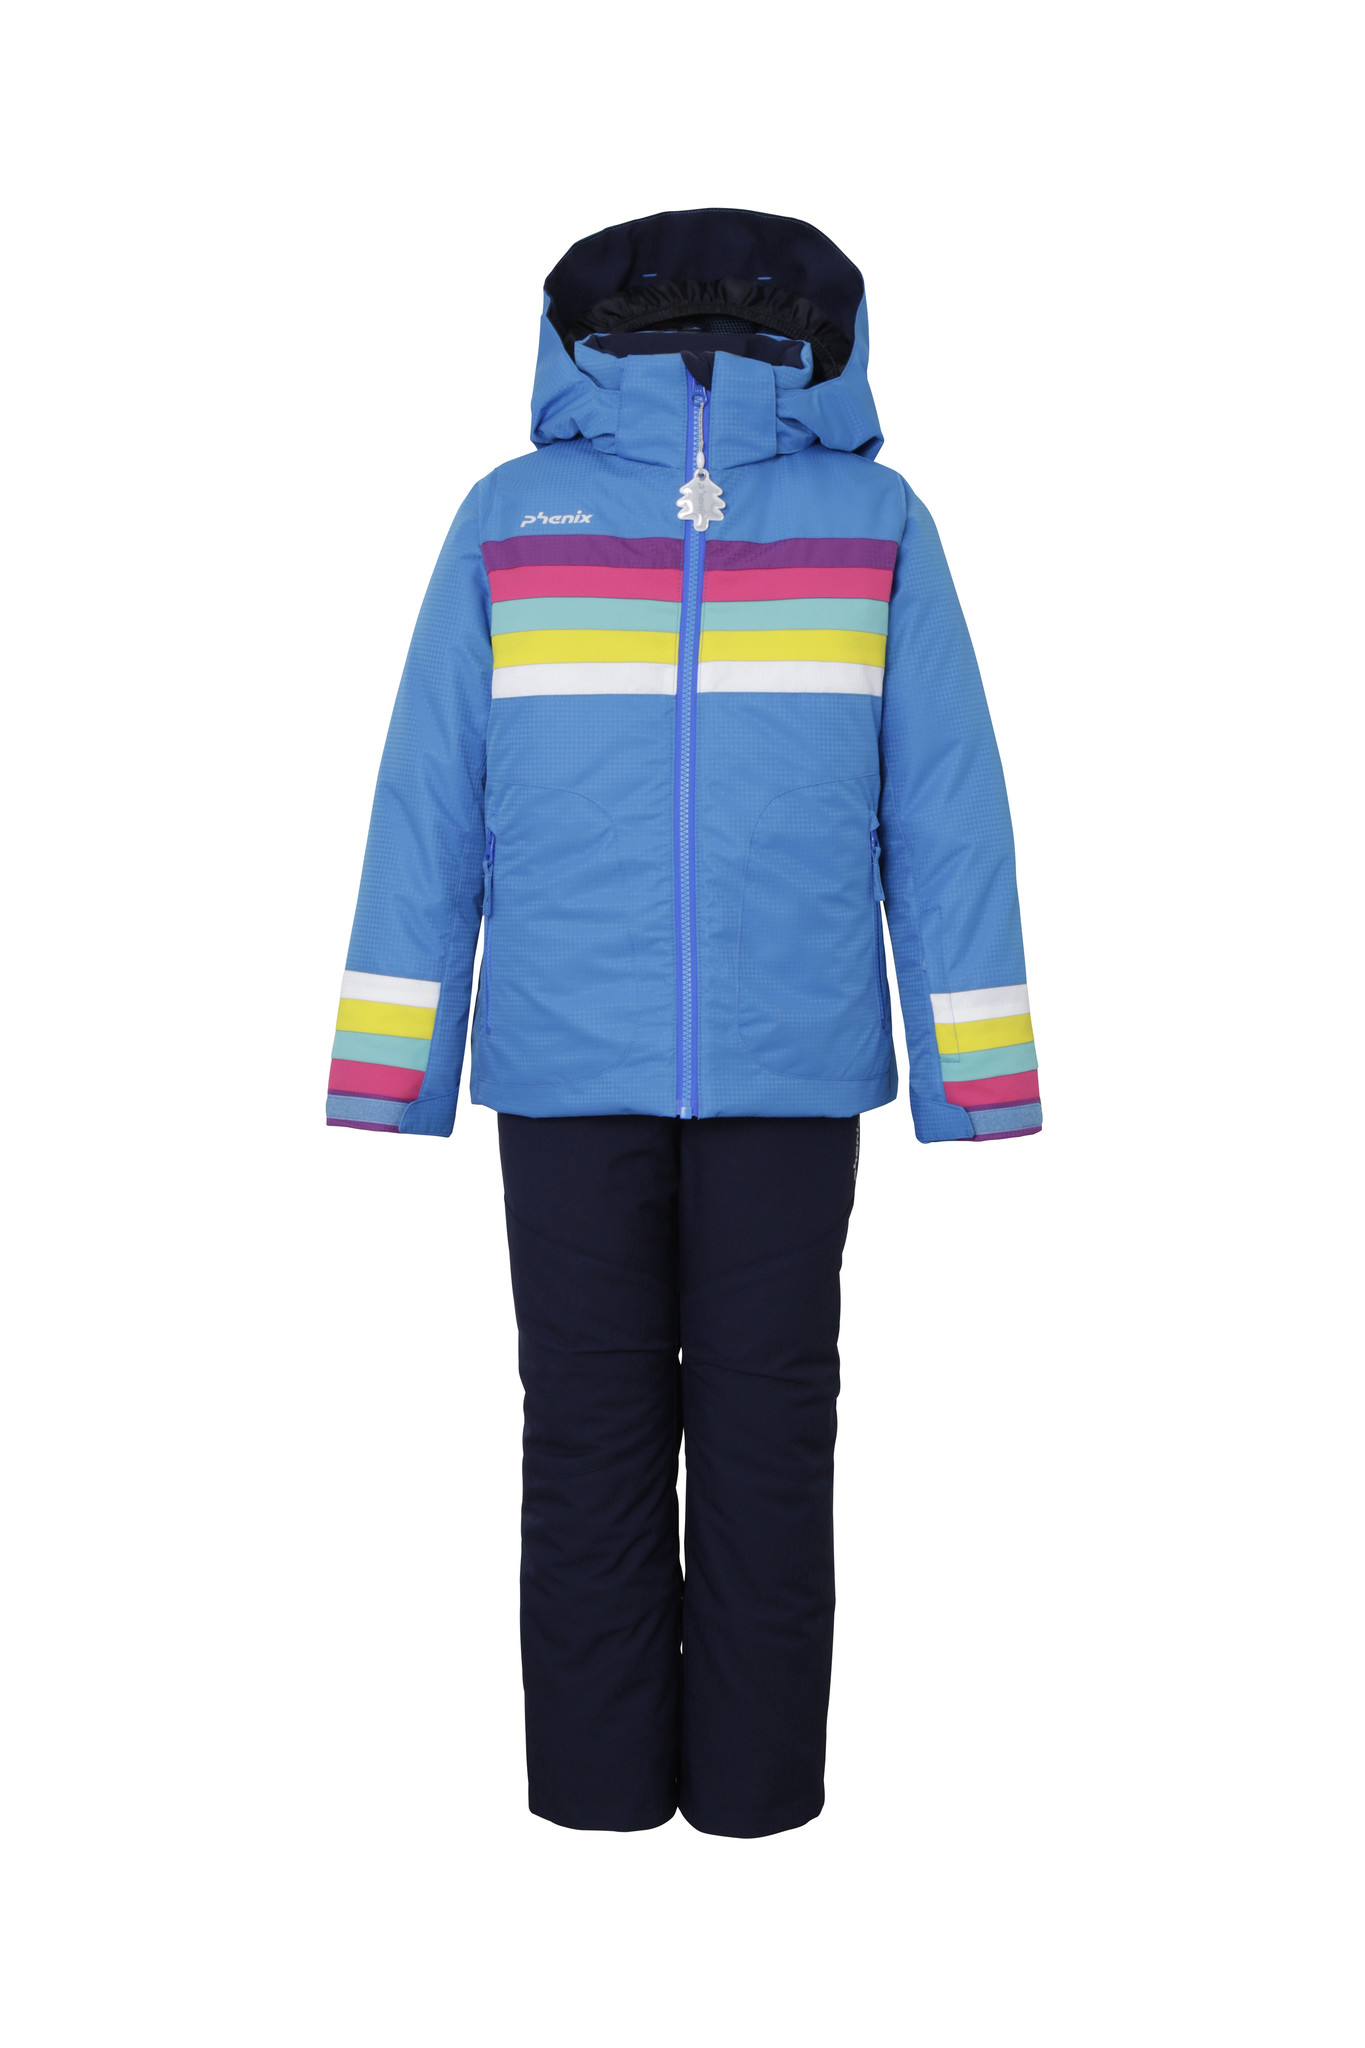 PHENIX Rainbow Kids Two-Piece